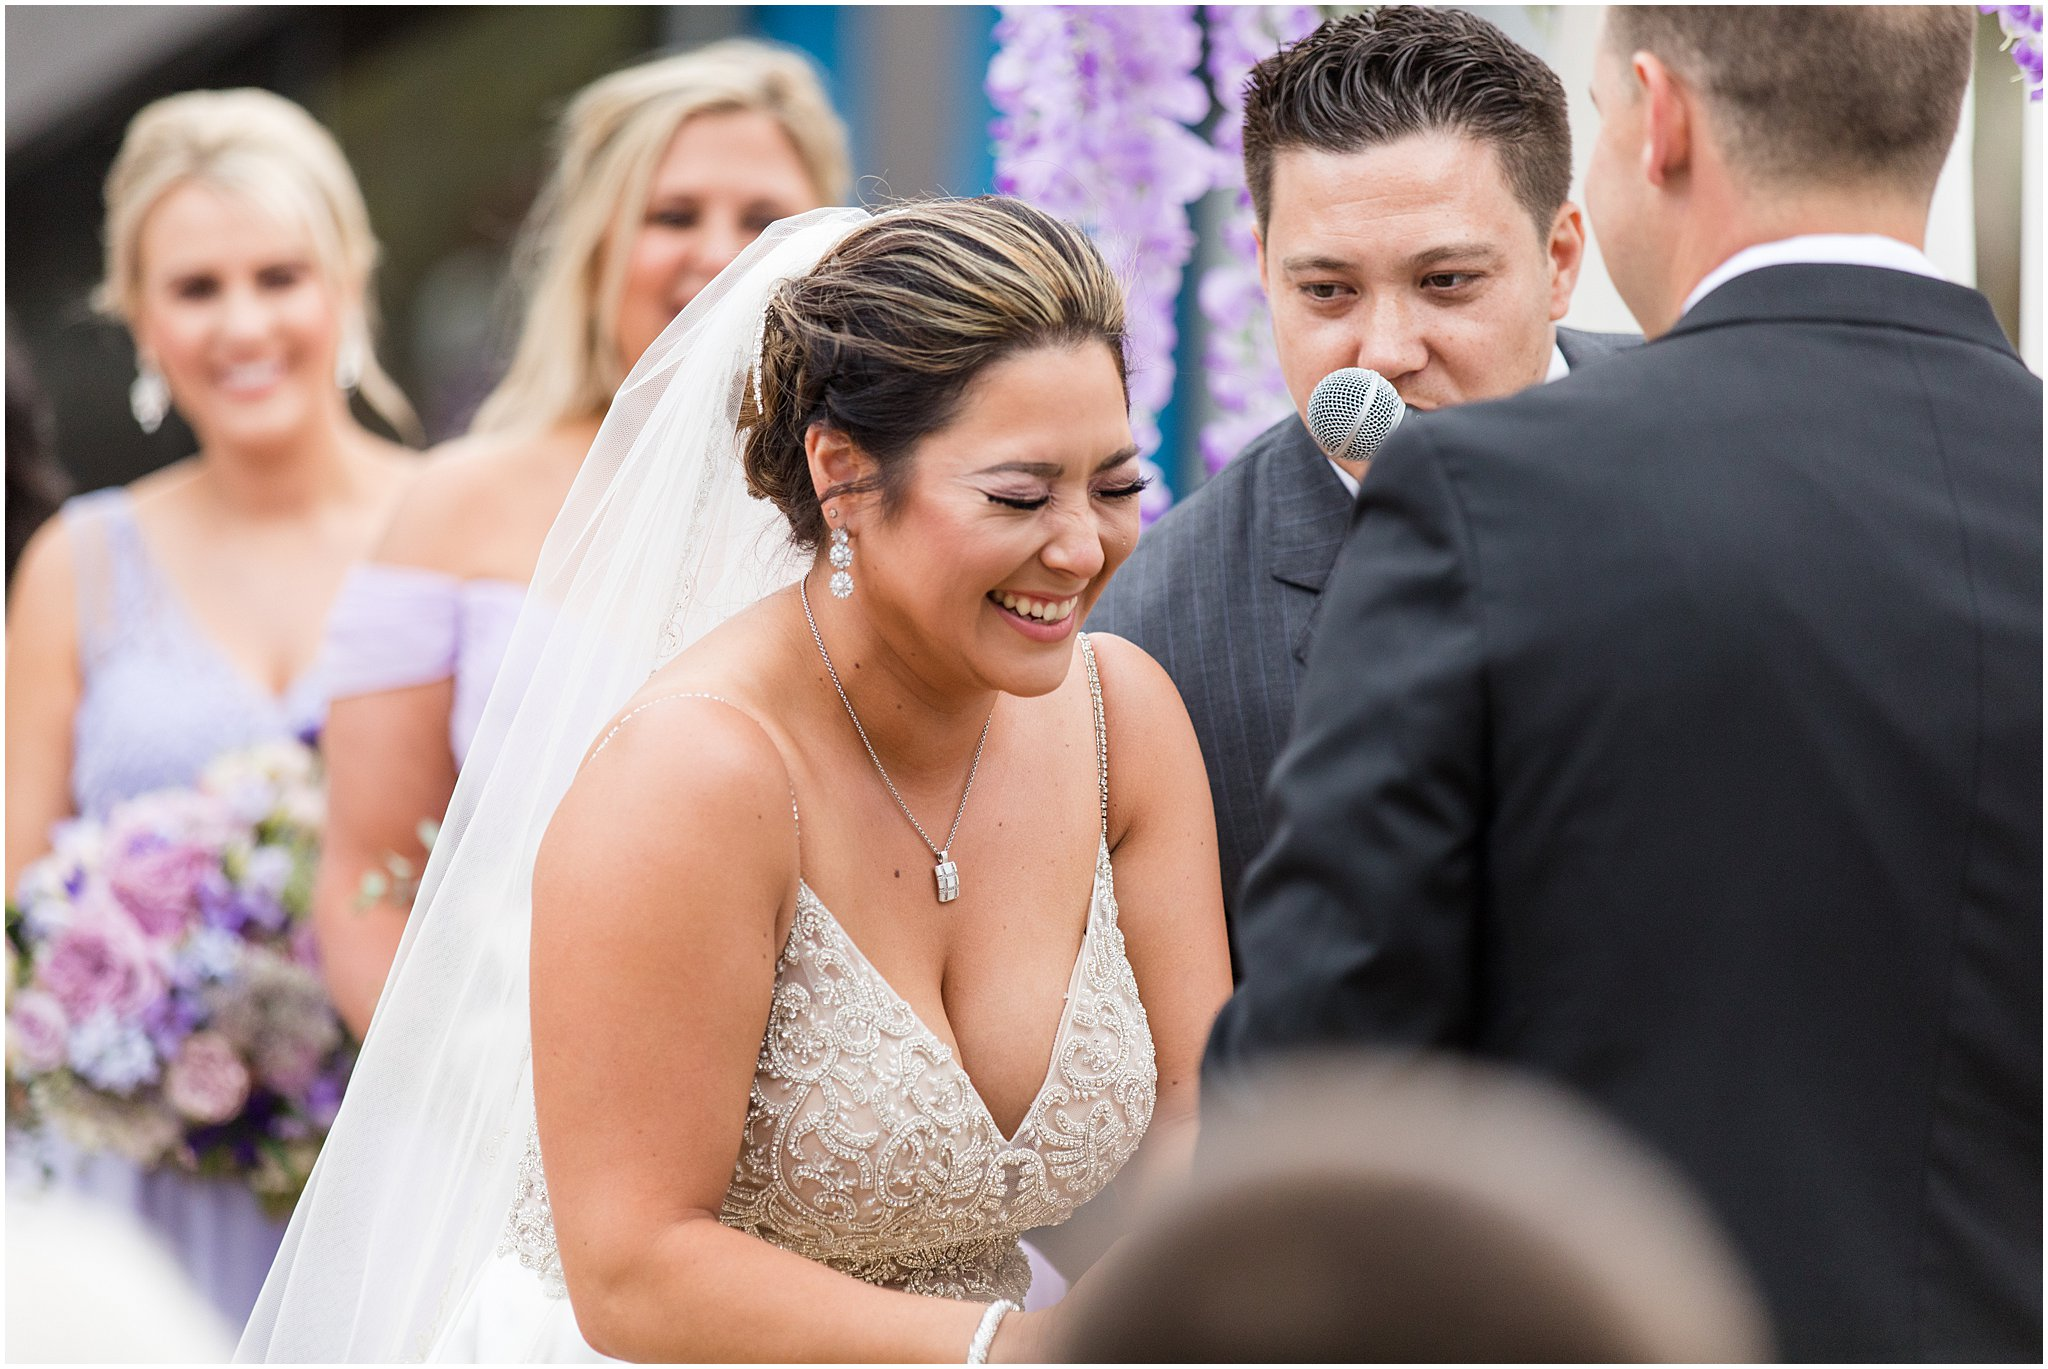 2019 wedding san juan bautista hacienda de leal vineyards bay area wedding photographer_0046.jpg